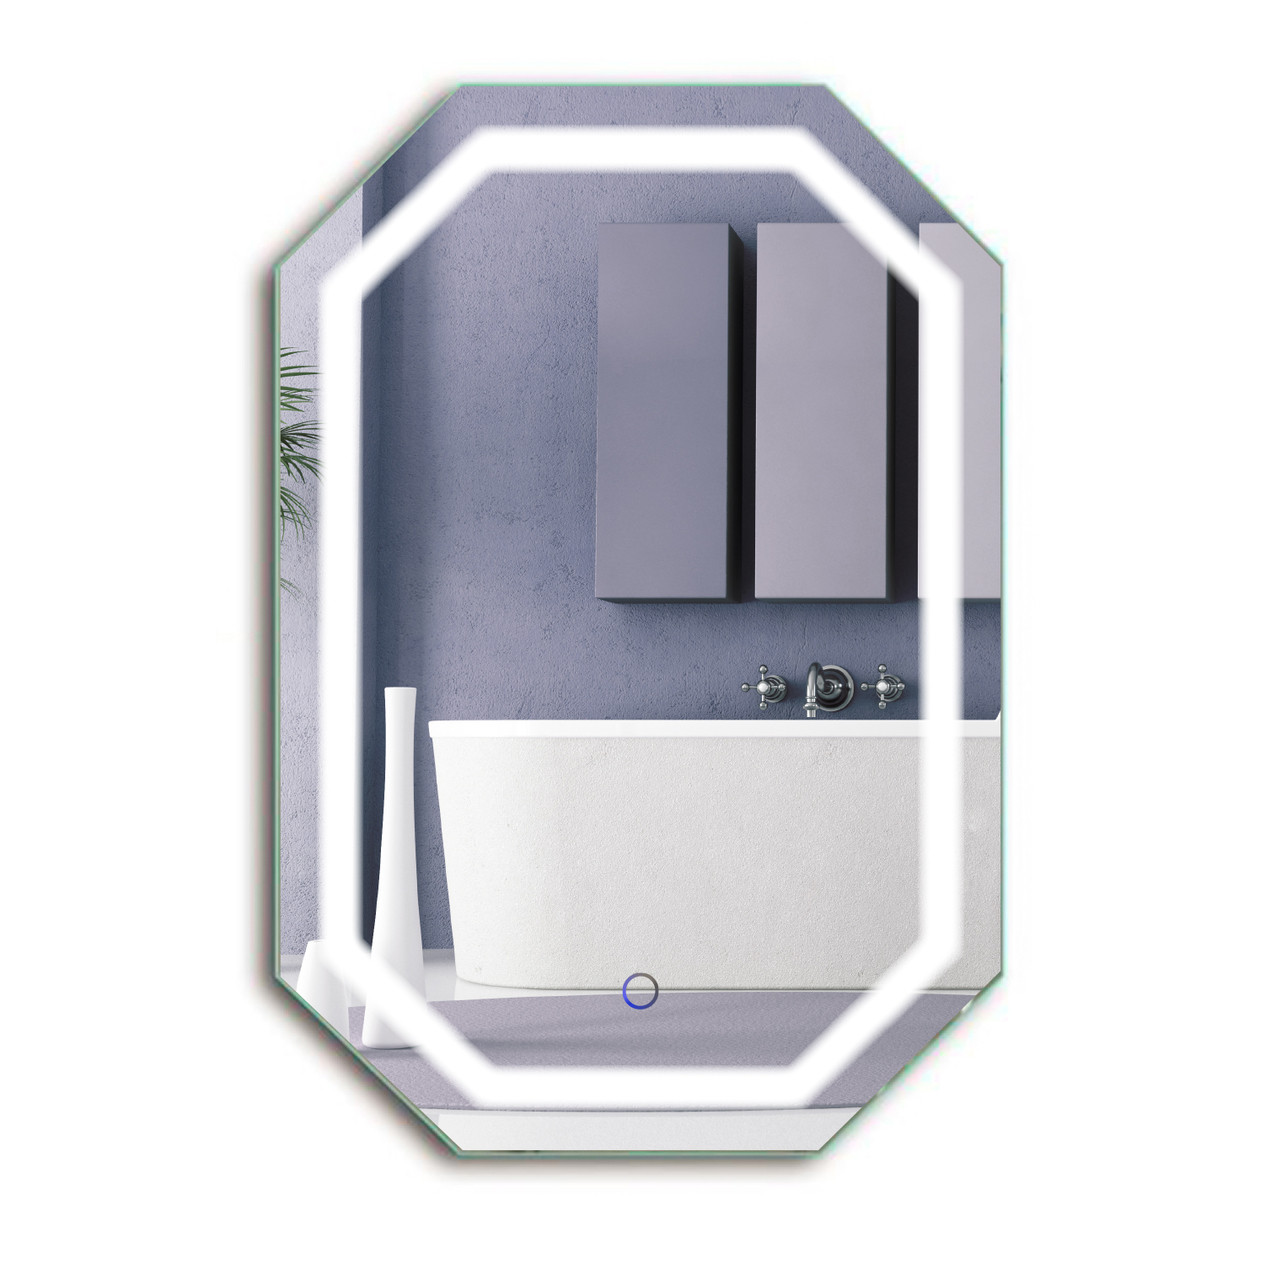 1bb6fba8cc9d ... Bathroom Lighted Mirror with Defogger   Dimmer - Tudor by Krugg. Your  Price   399.99 (You save  172.01). N